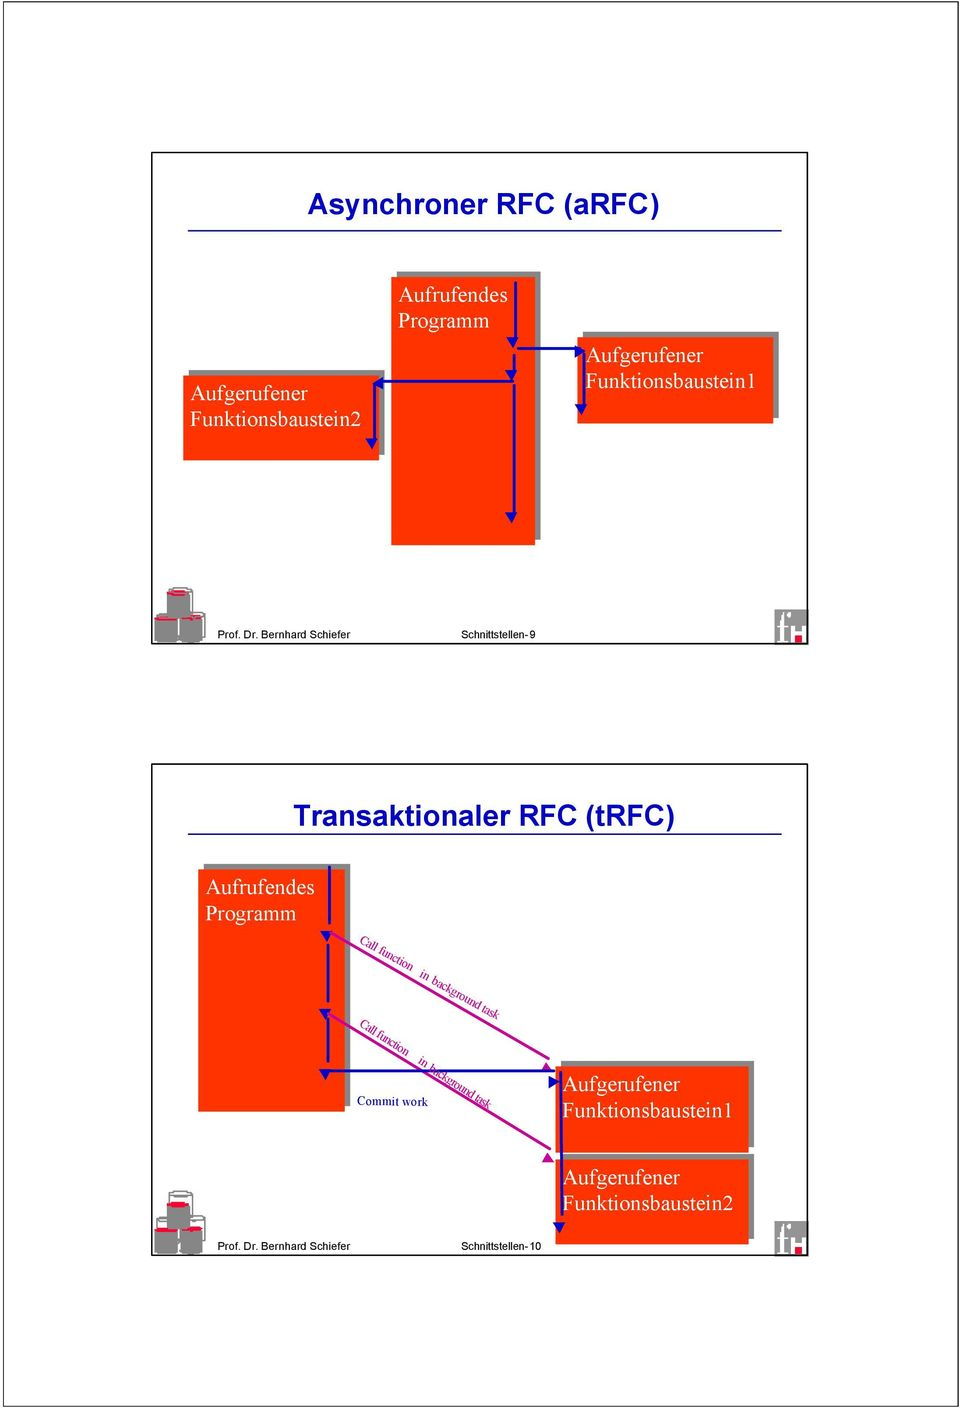 Transaktionaler RFC (trfc) Call function in background task Call function in